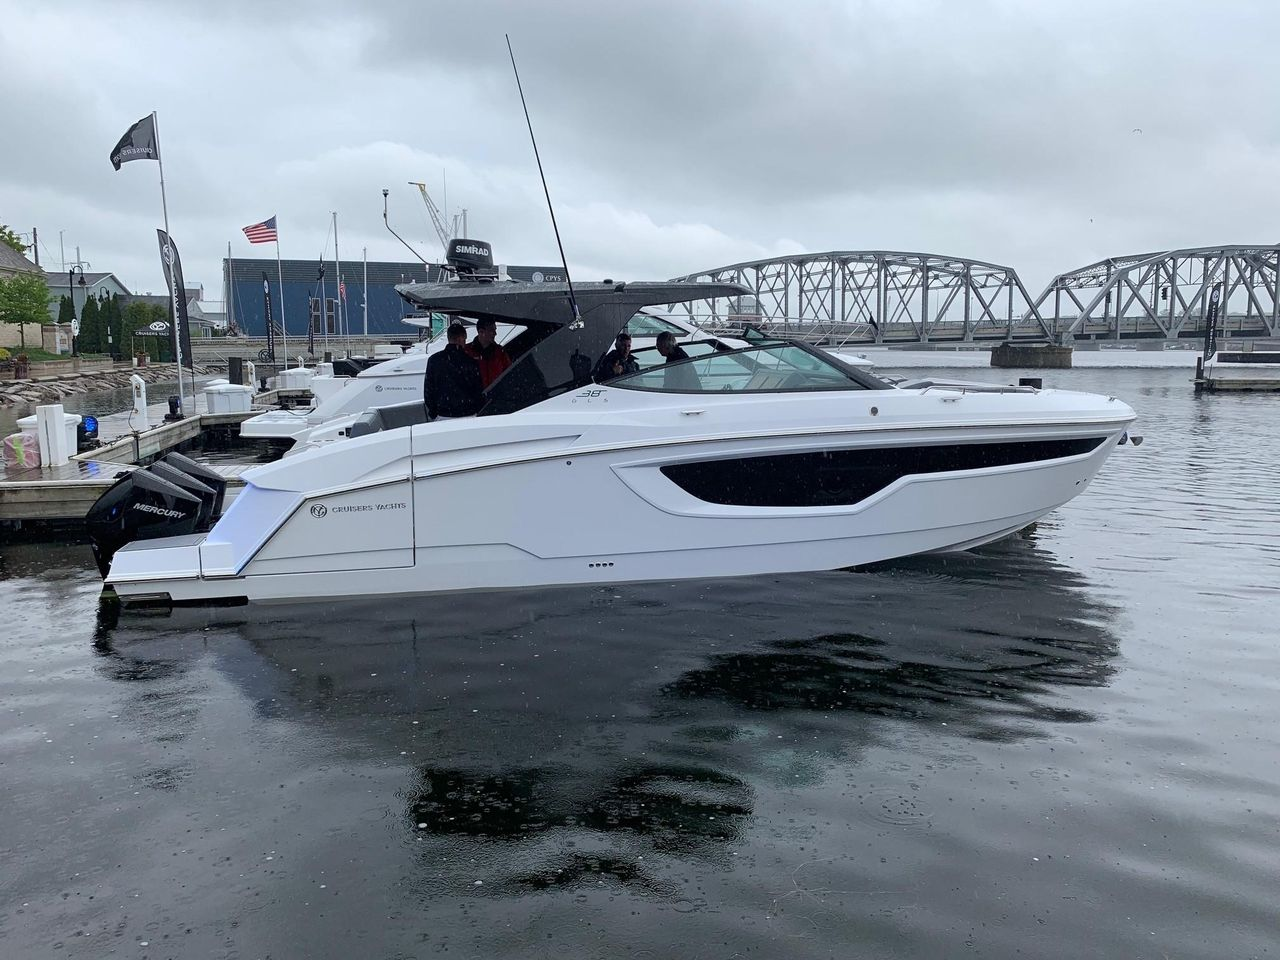 2019 New Cruisers Yachts 38 Gls Bowrider Boat For Sale Fort